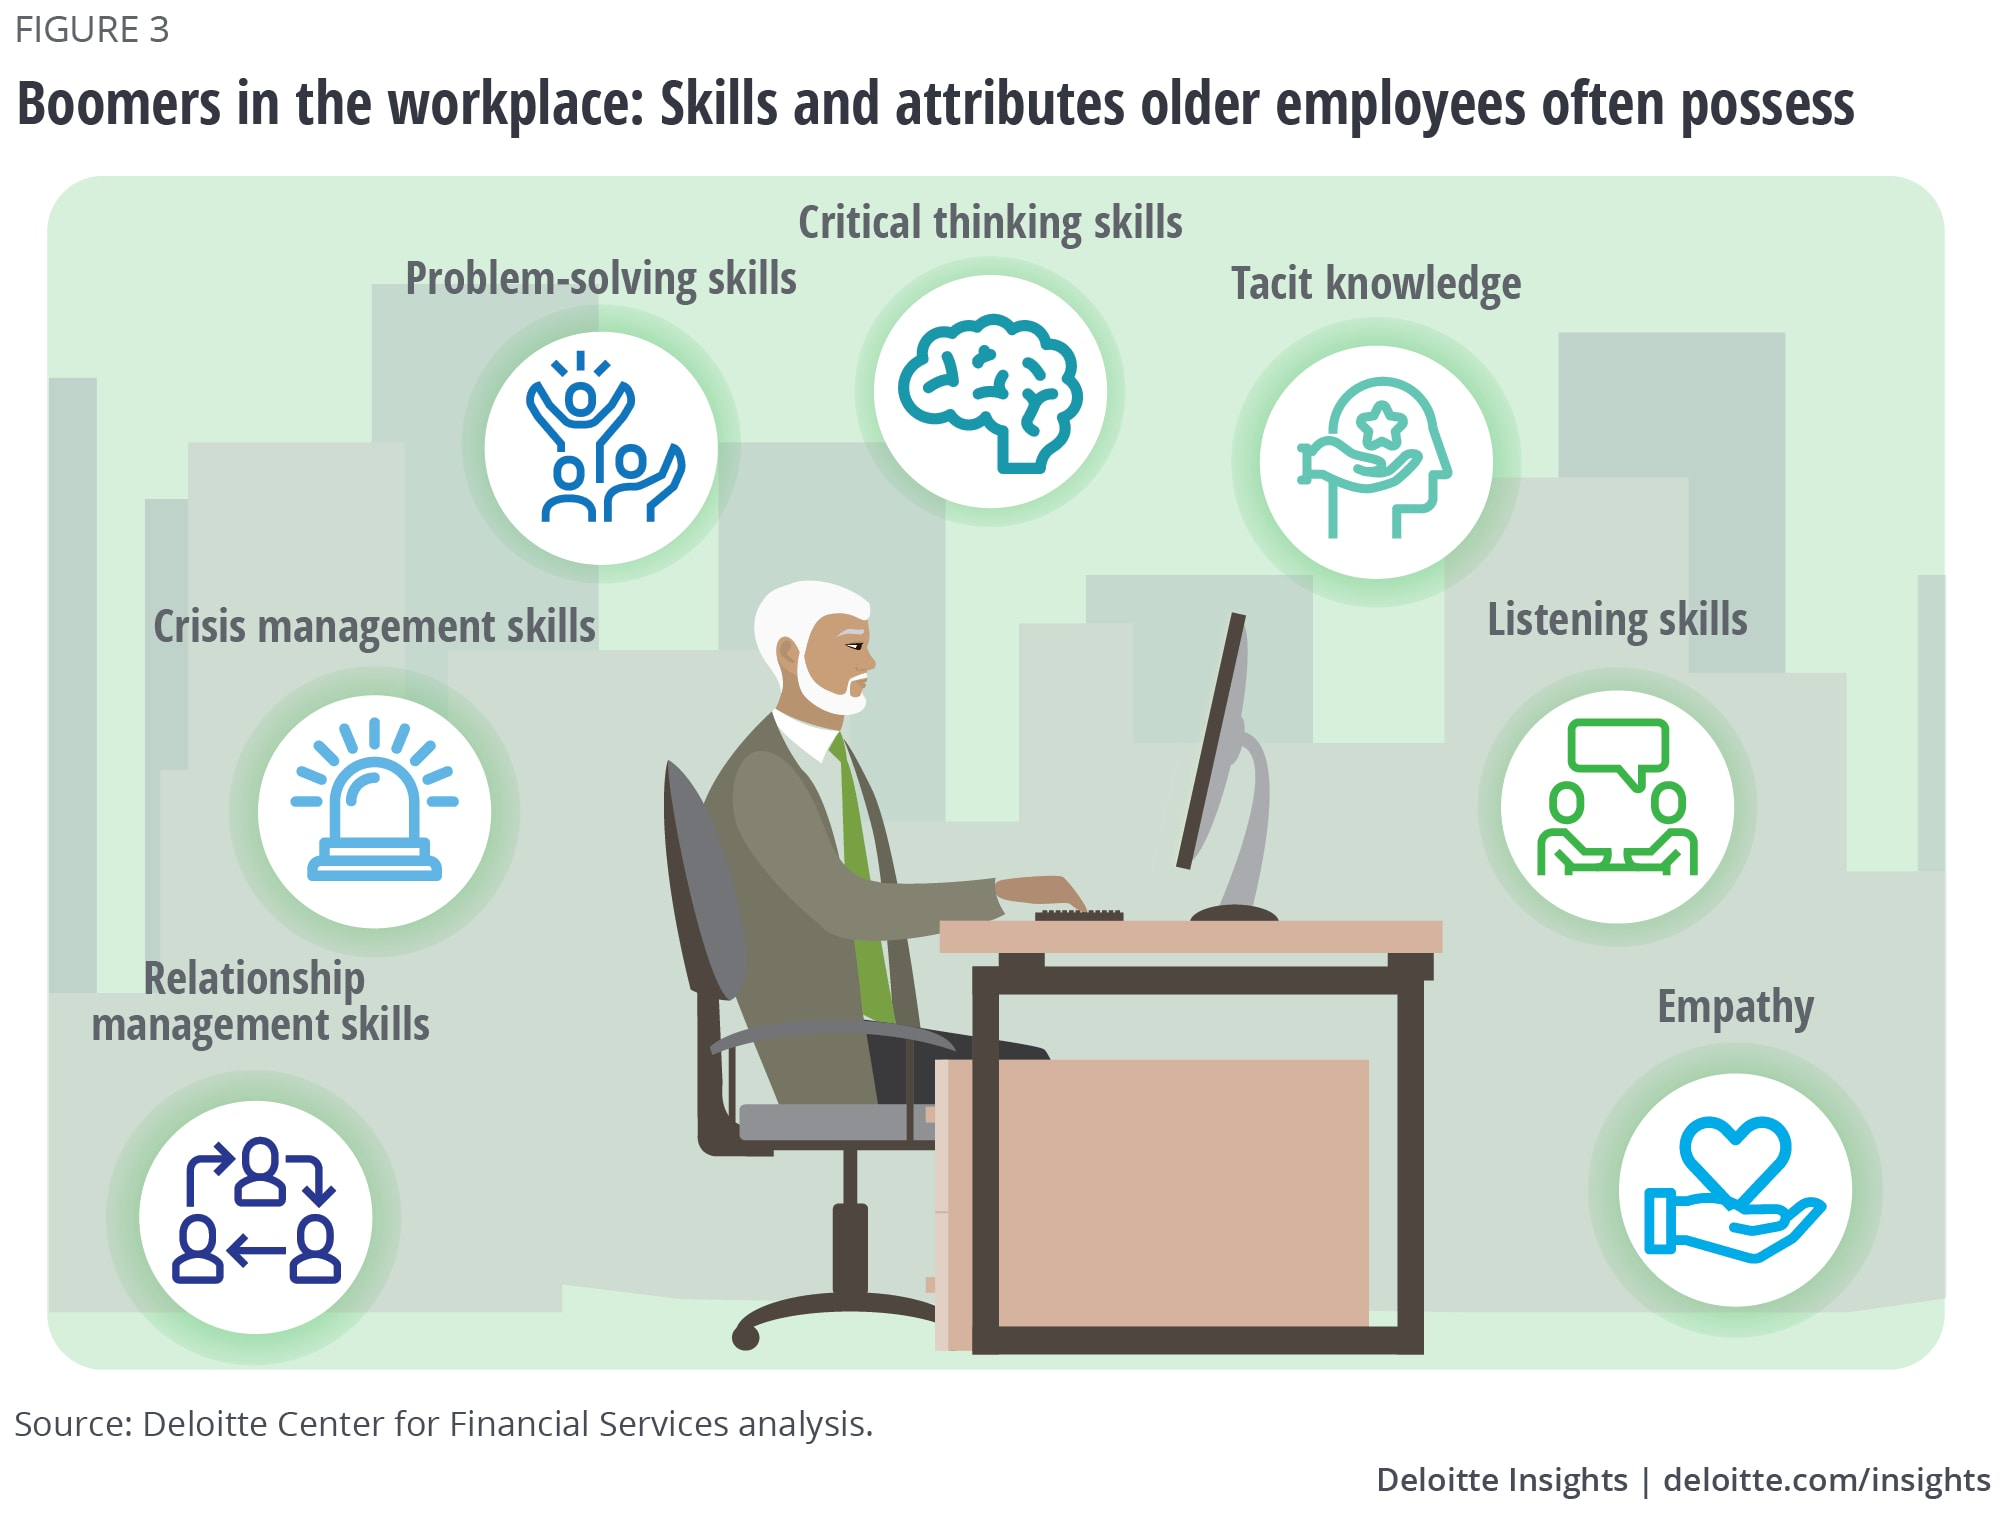 Boomers in the workplace: Skills and attributes older employees often possess